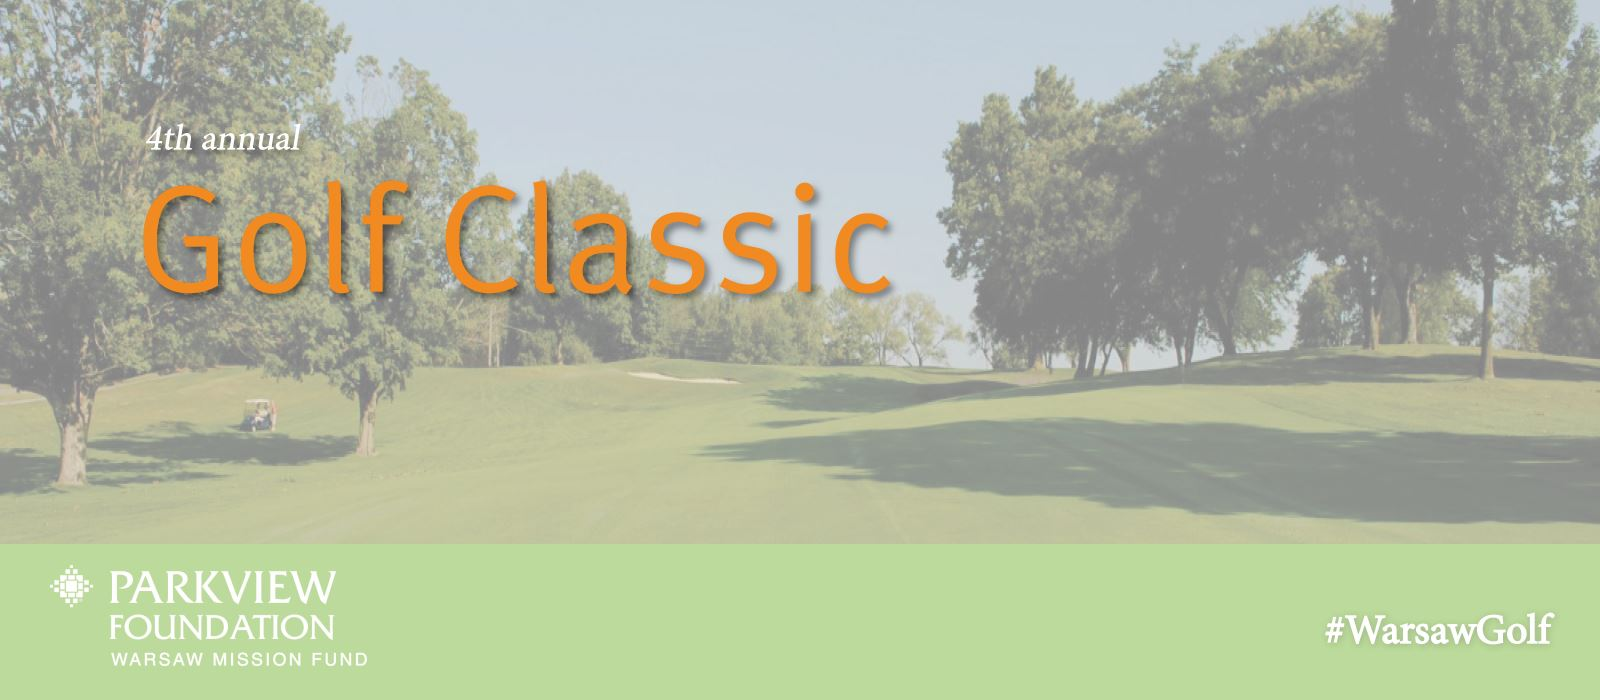 Parkview Warsaw Mission Fund Golf Classic